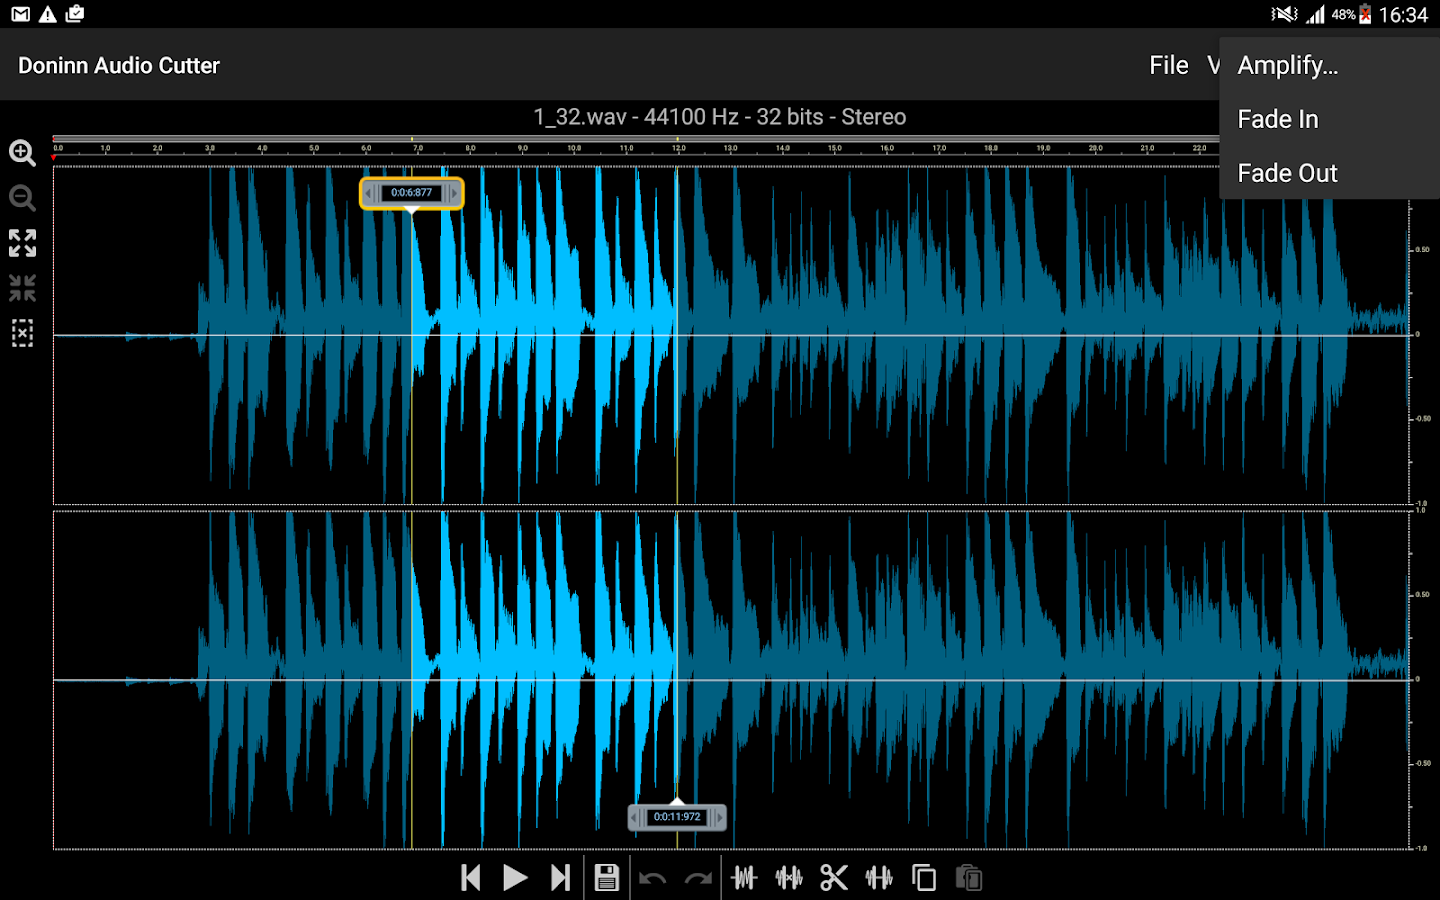 Doninn Audio Cutter Free Screenshot 11